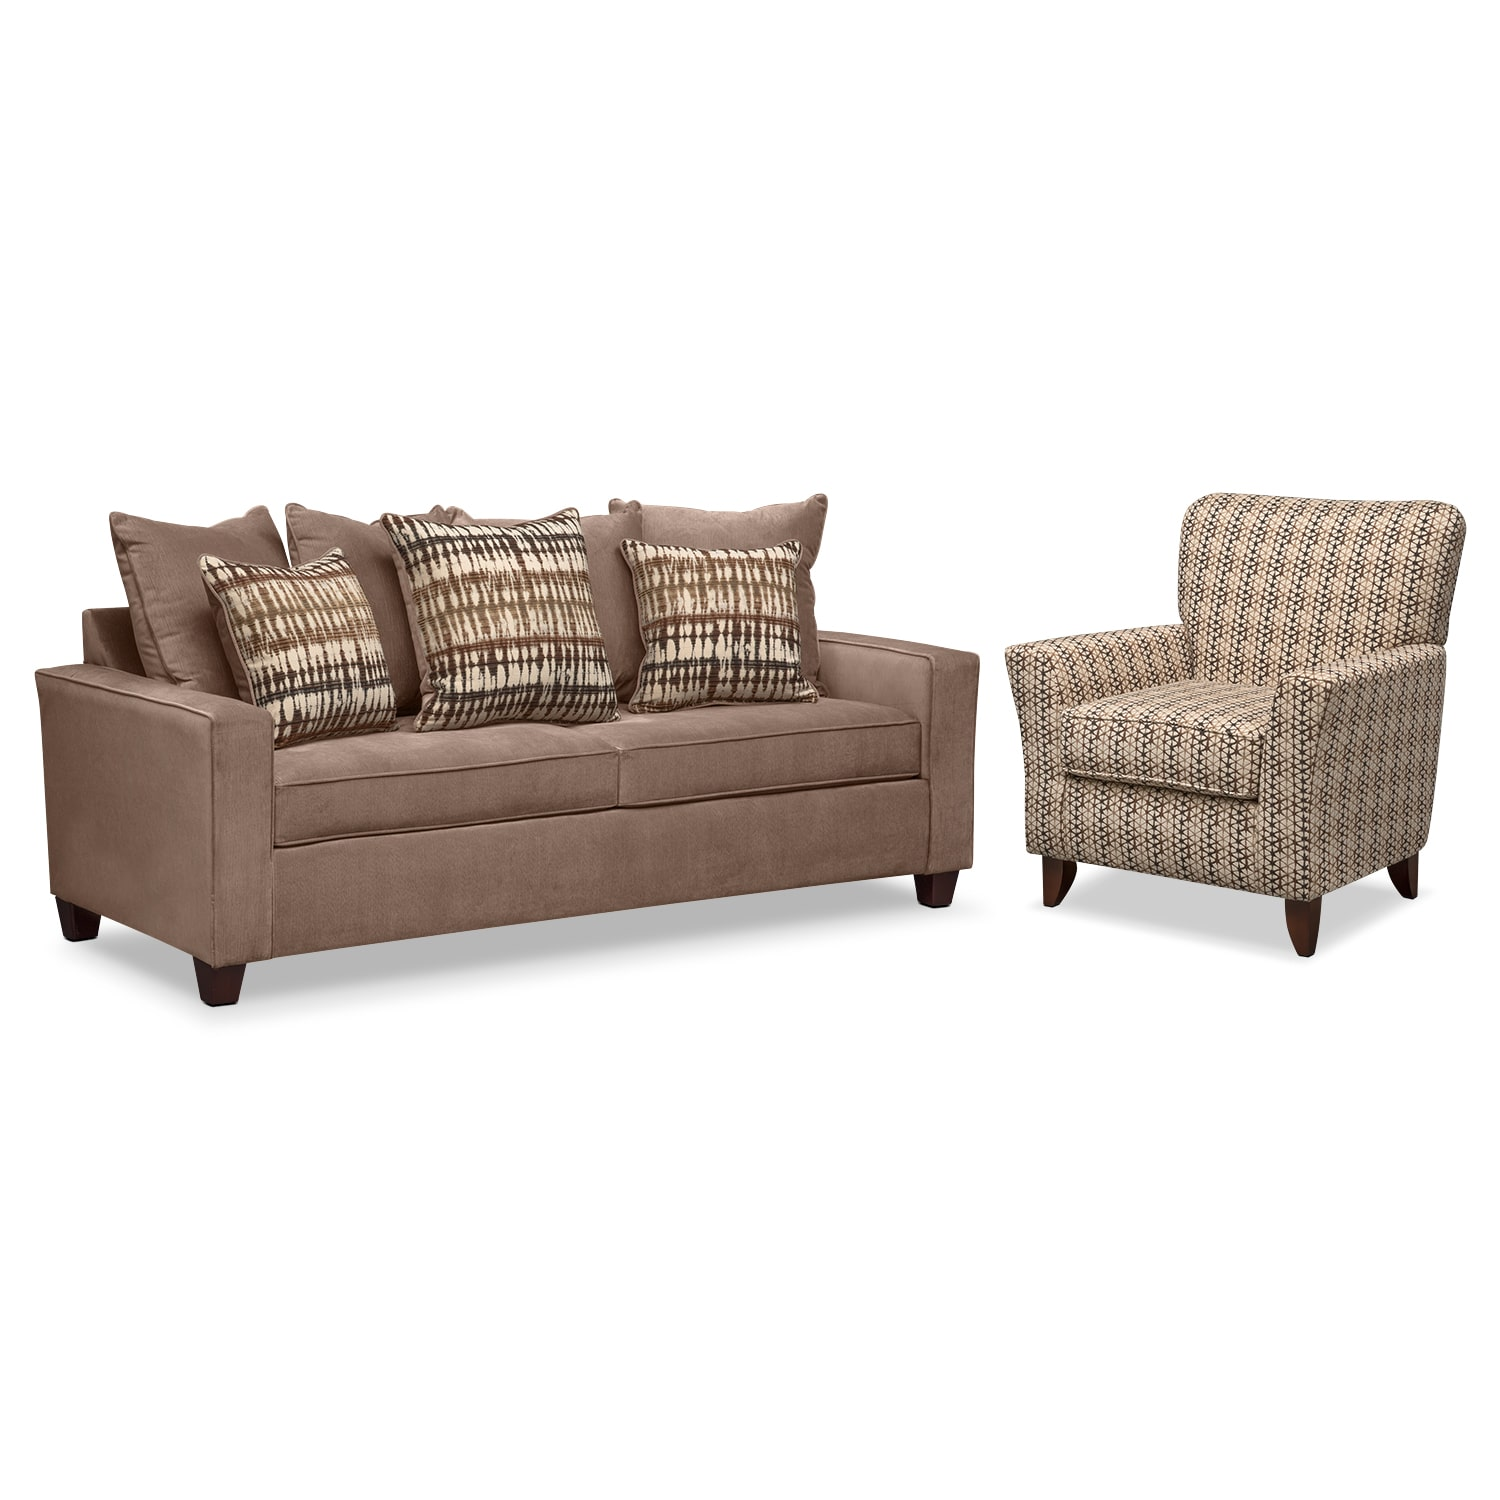 Living Room Furniture - Bryden Queen Innerspring Sleeper Sleeper Sofa and Accent Chair Set - Chocolate